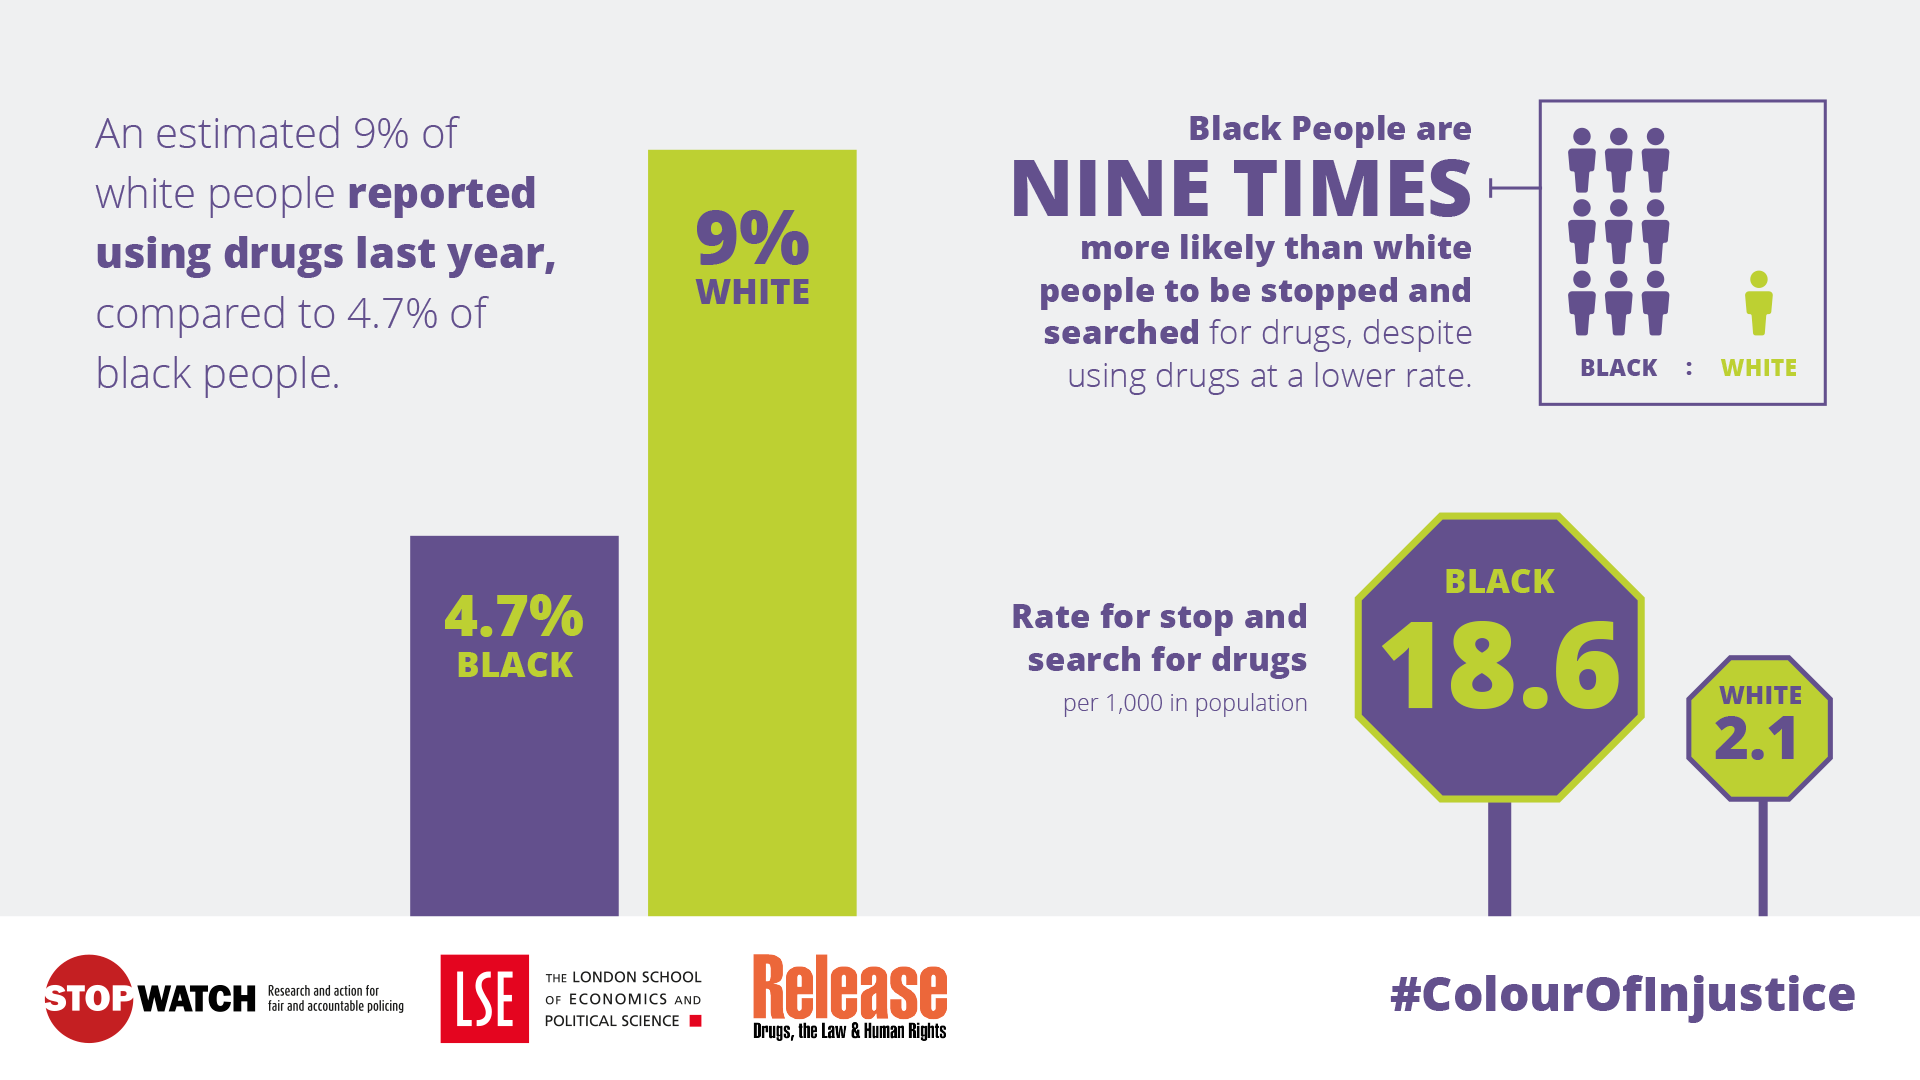 Despite using drugs at a lower rate than white people, black people are 9 TIMES more likely than white people to be stopped & searched for drugs.